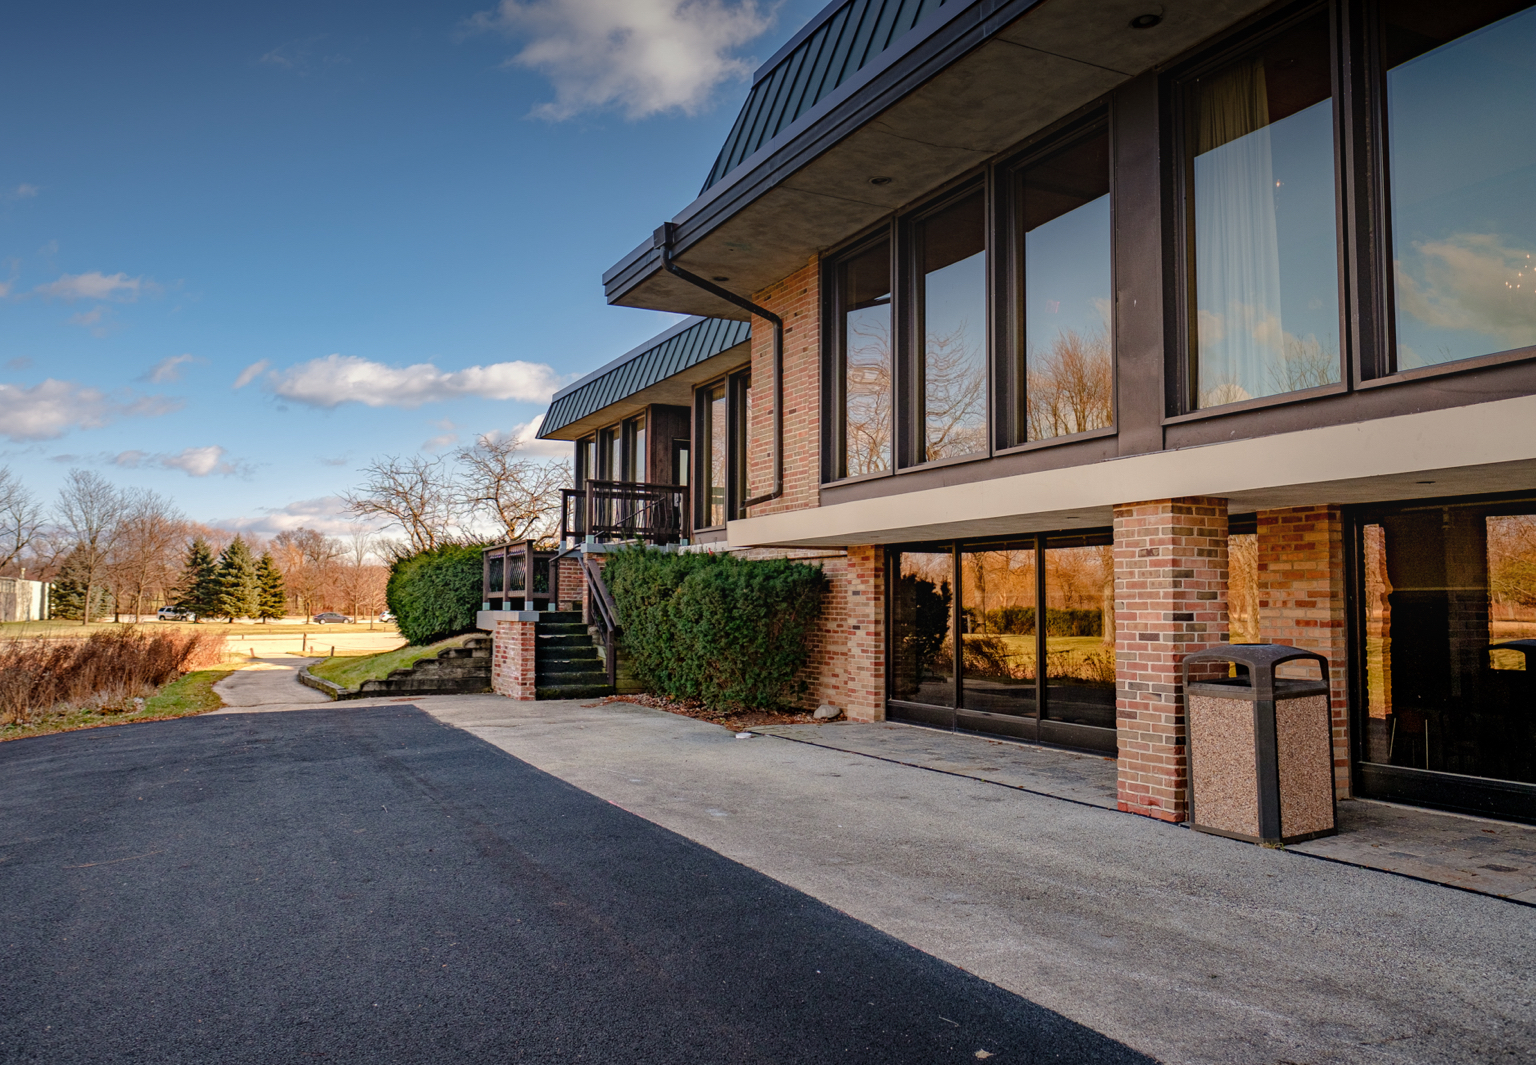 Outside of the Highland Park Country accessible to including Northbrook, Deerfield, Schaumburg, Naperville, Oak Park, Glenview, and Buffalo Grove Club private venue